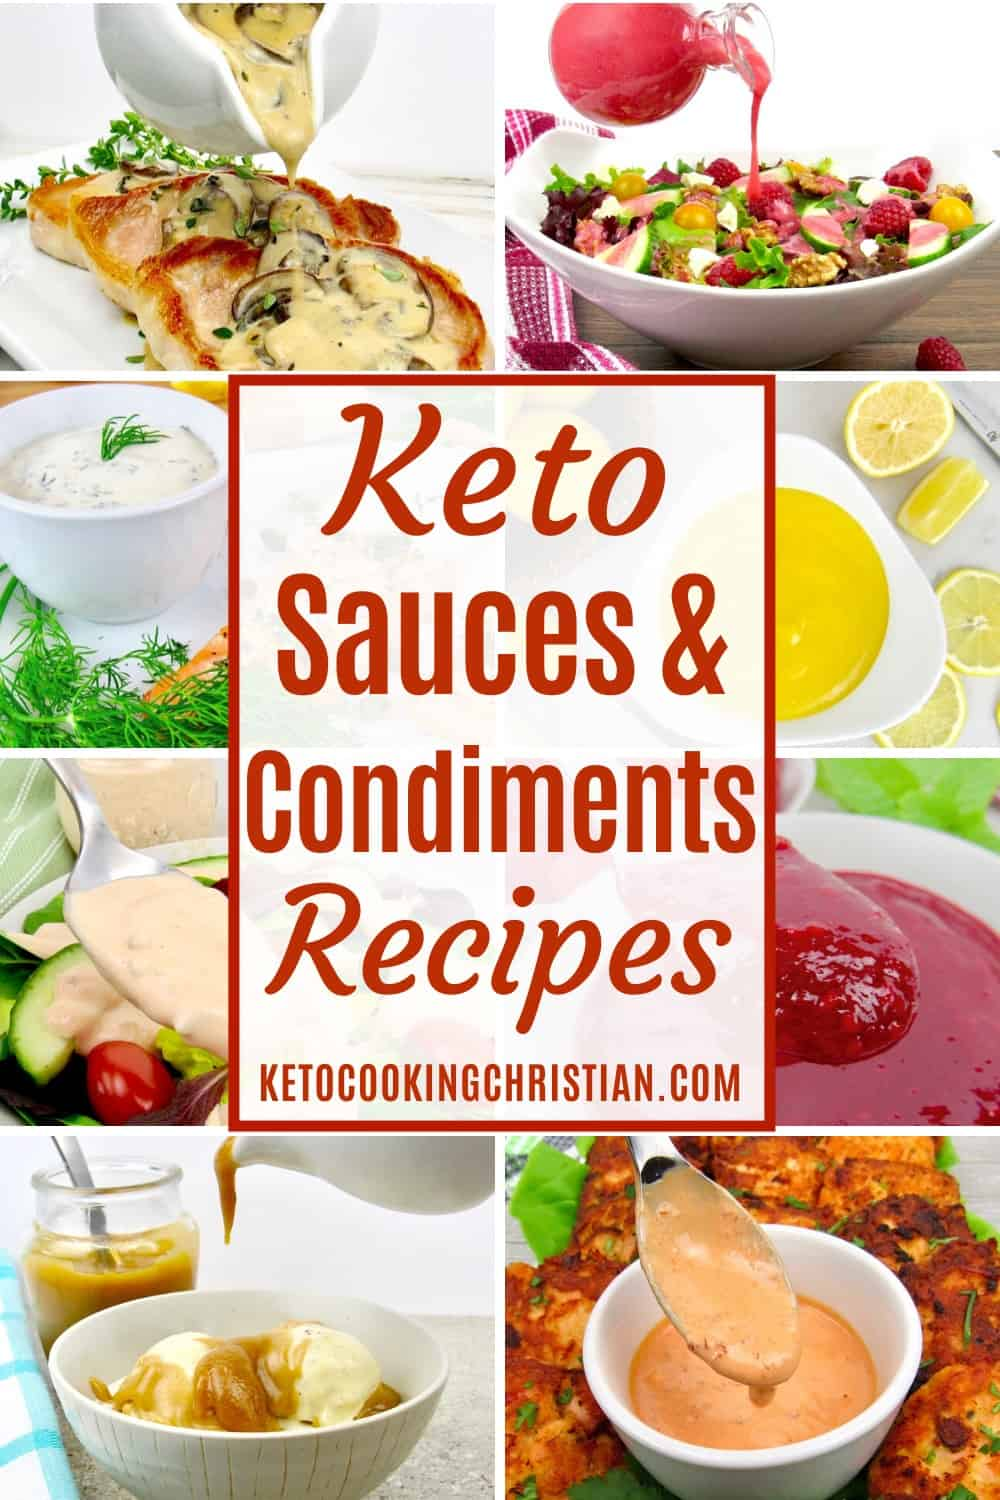 PIN Keto Sauces & Condiments Recipes